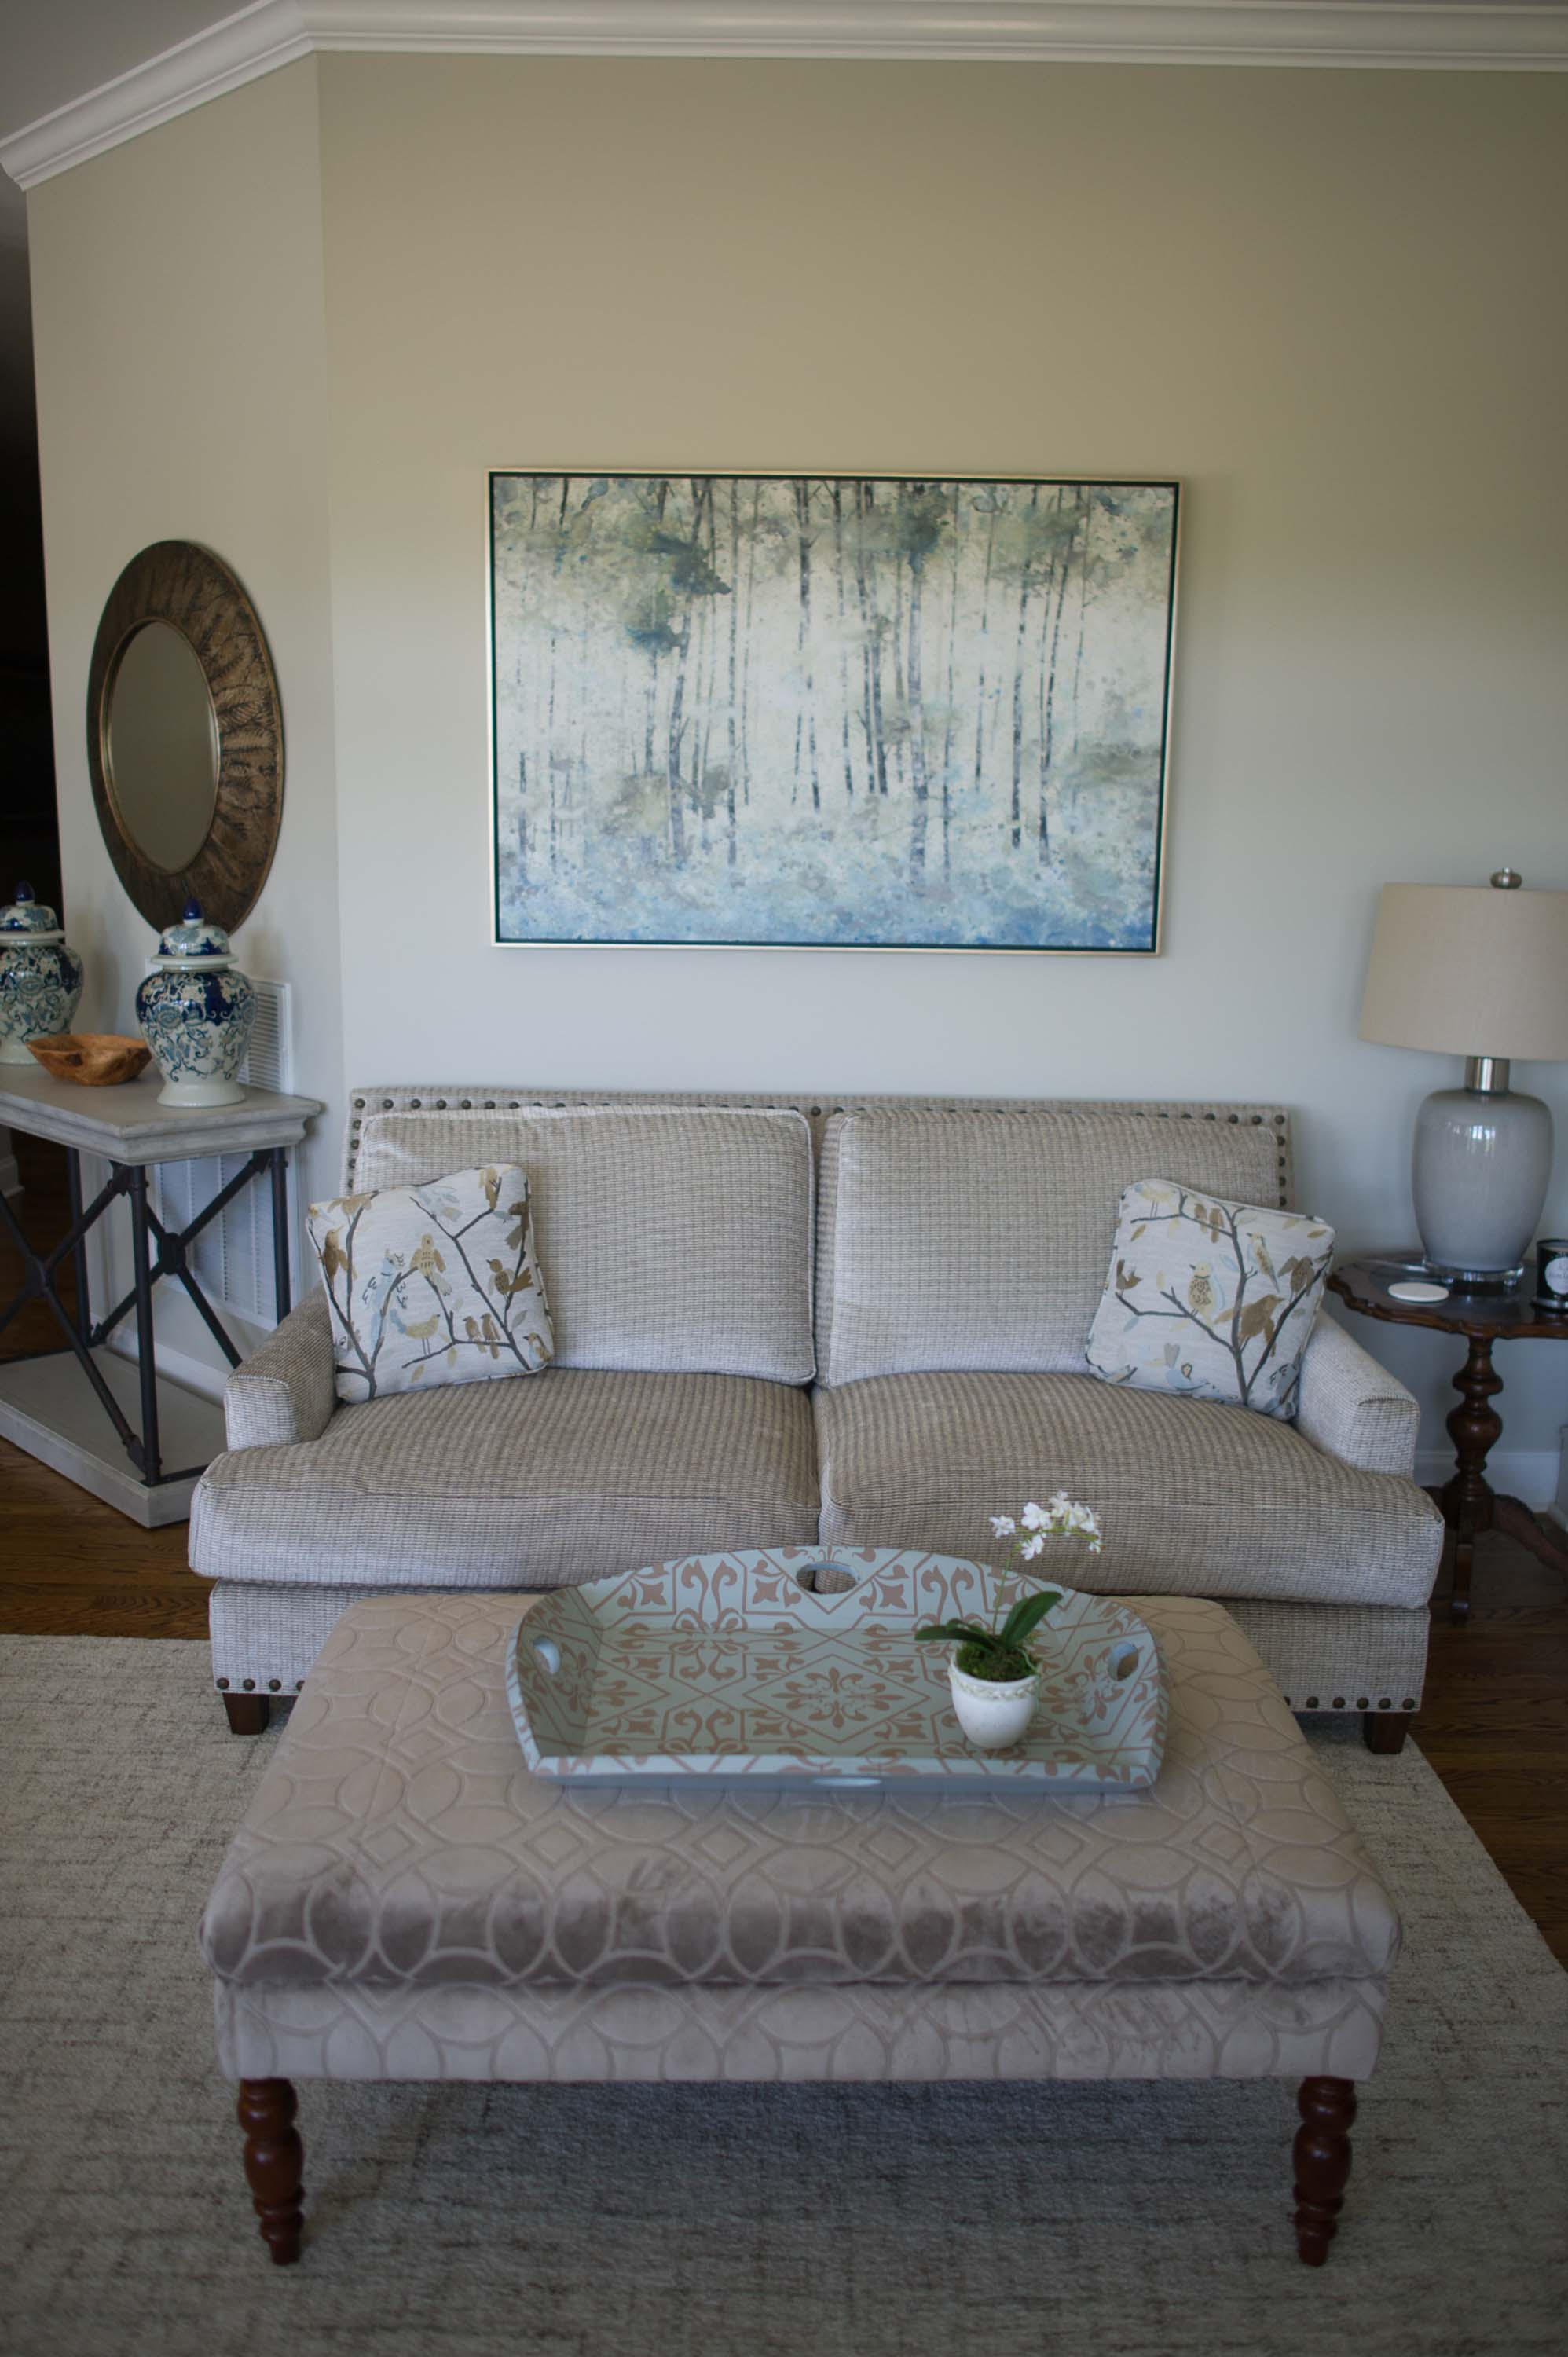 Living room with sofa, center table and artwork on the wall